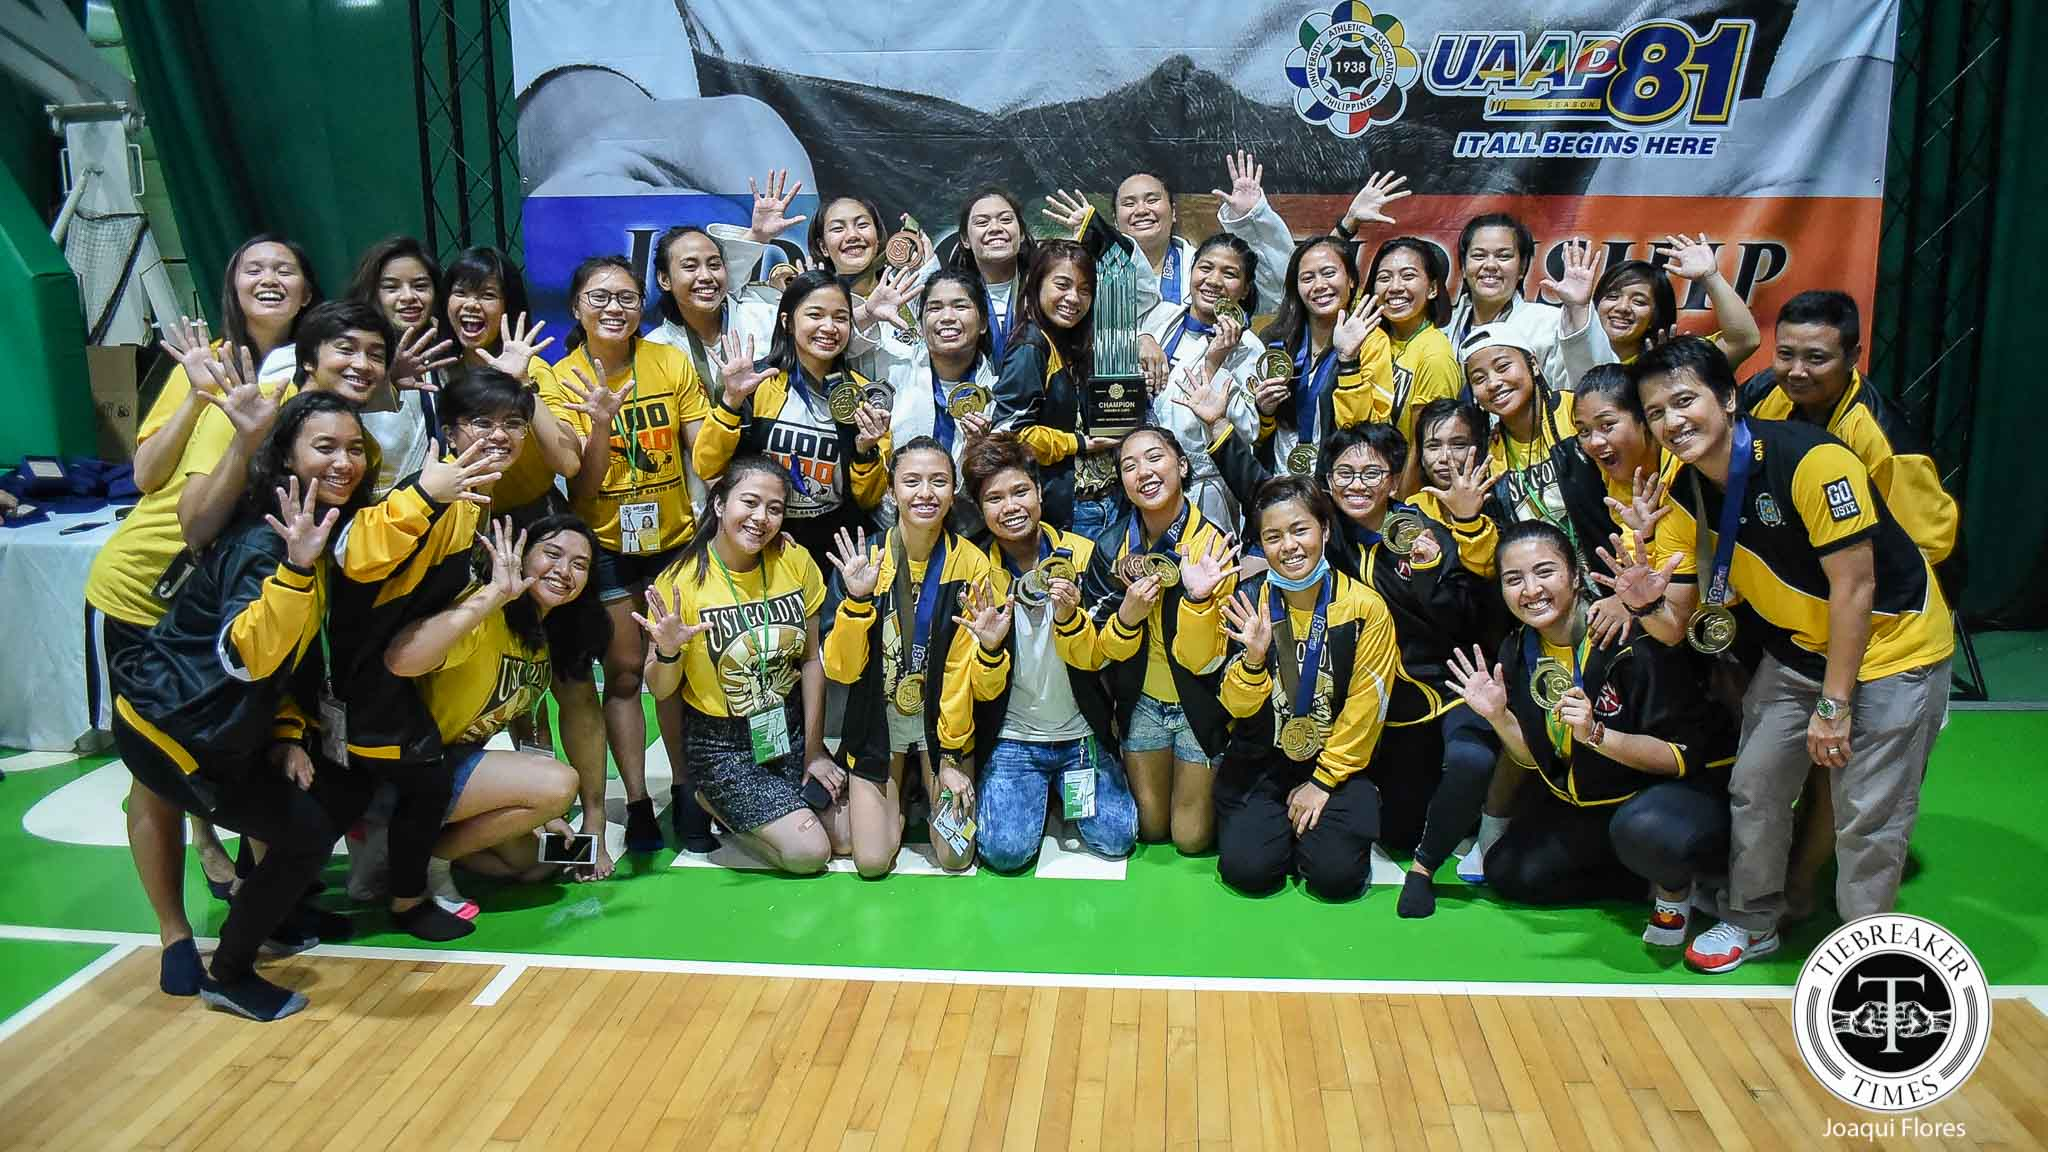 Tiebreaker Times Strength in Numbers: UST Lady Judokas secure historic 5th straight crown ADMU DLSU Judo News UAAP UE UP UST  UST Women's Judo UP Women's Judo UE Women's Judo Sharlene Guyo Justine Main Gege Arce DLSU Women's Judo Charisse Aseneta Ateneo Women's Judo Arshea Gimena